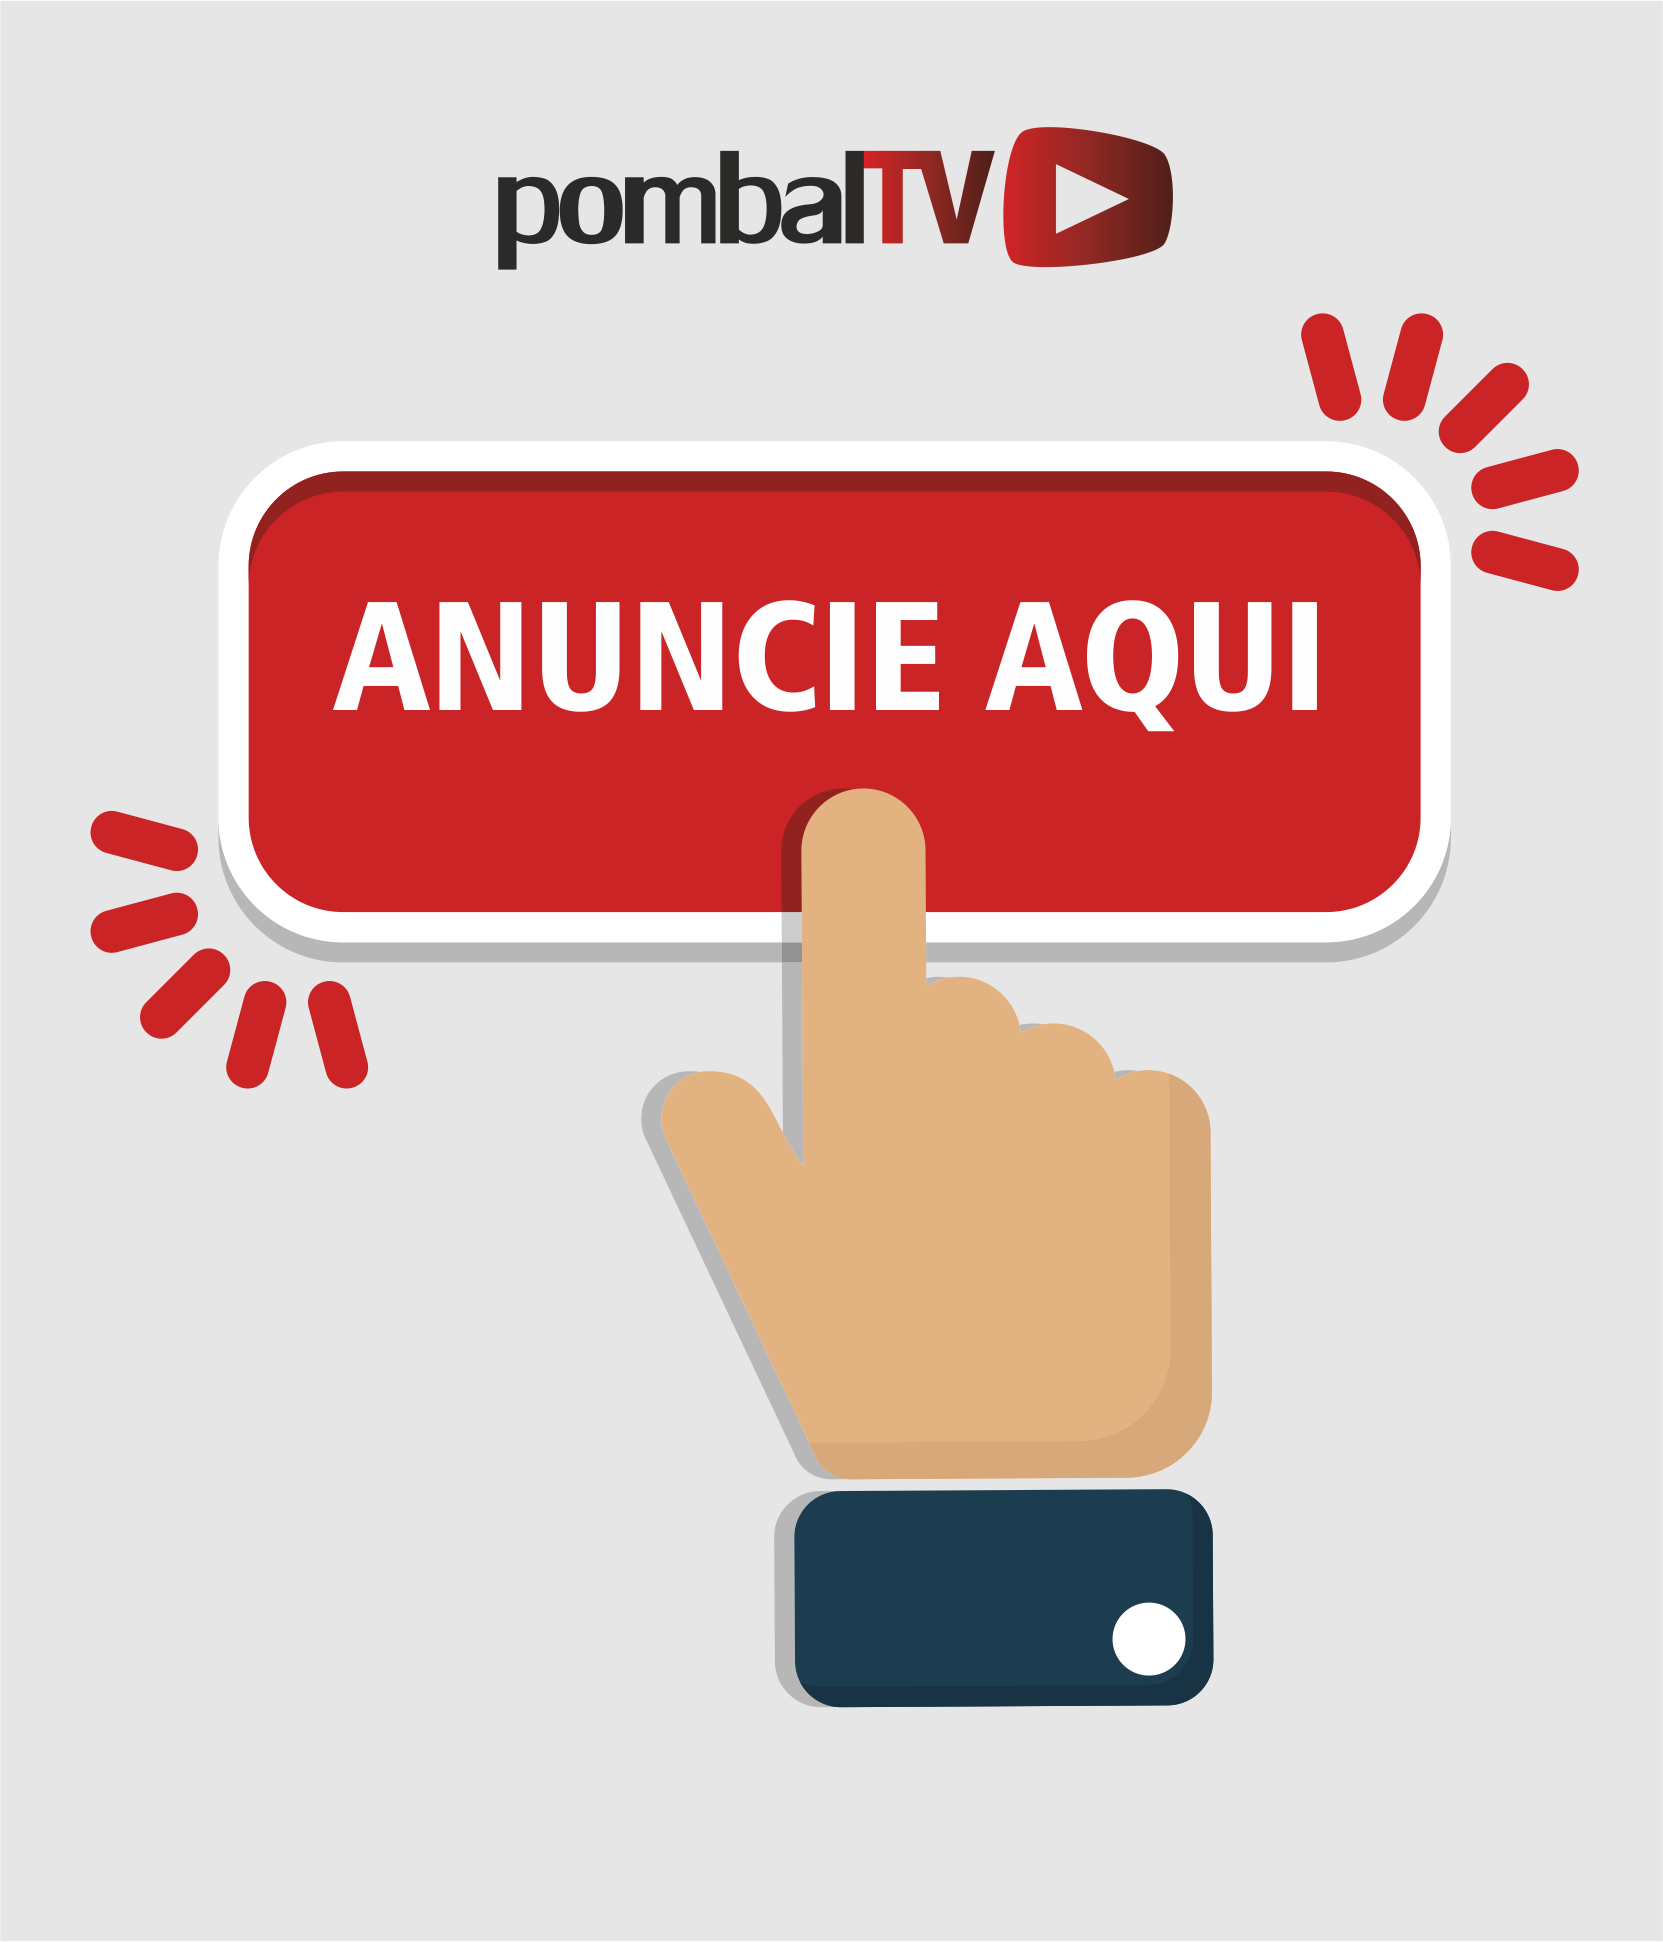 https://pombaltv.pt/contactos/